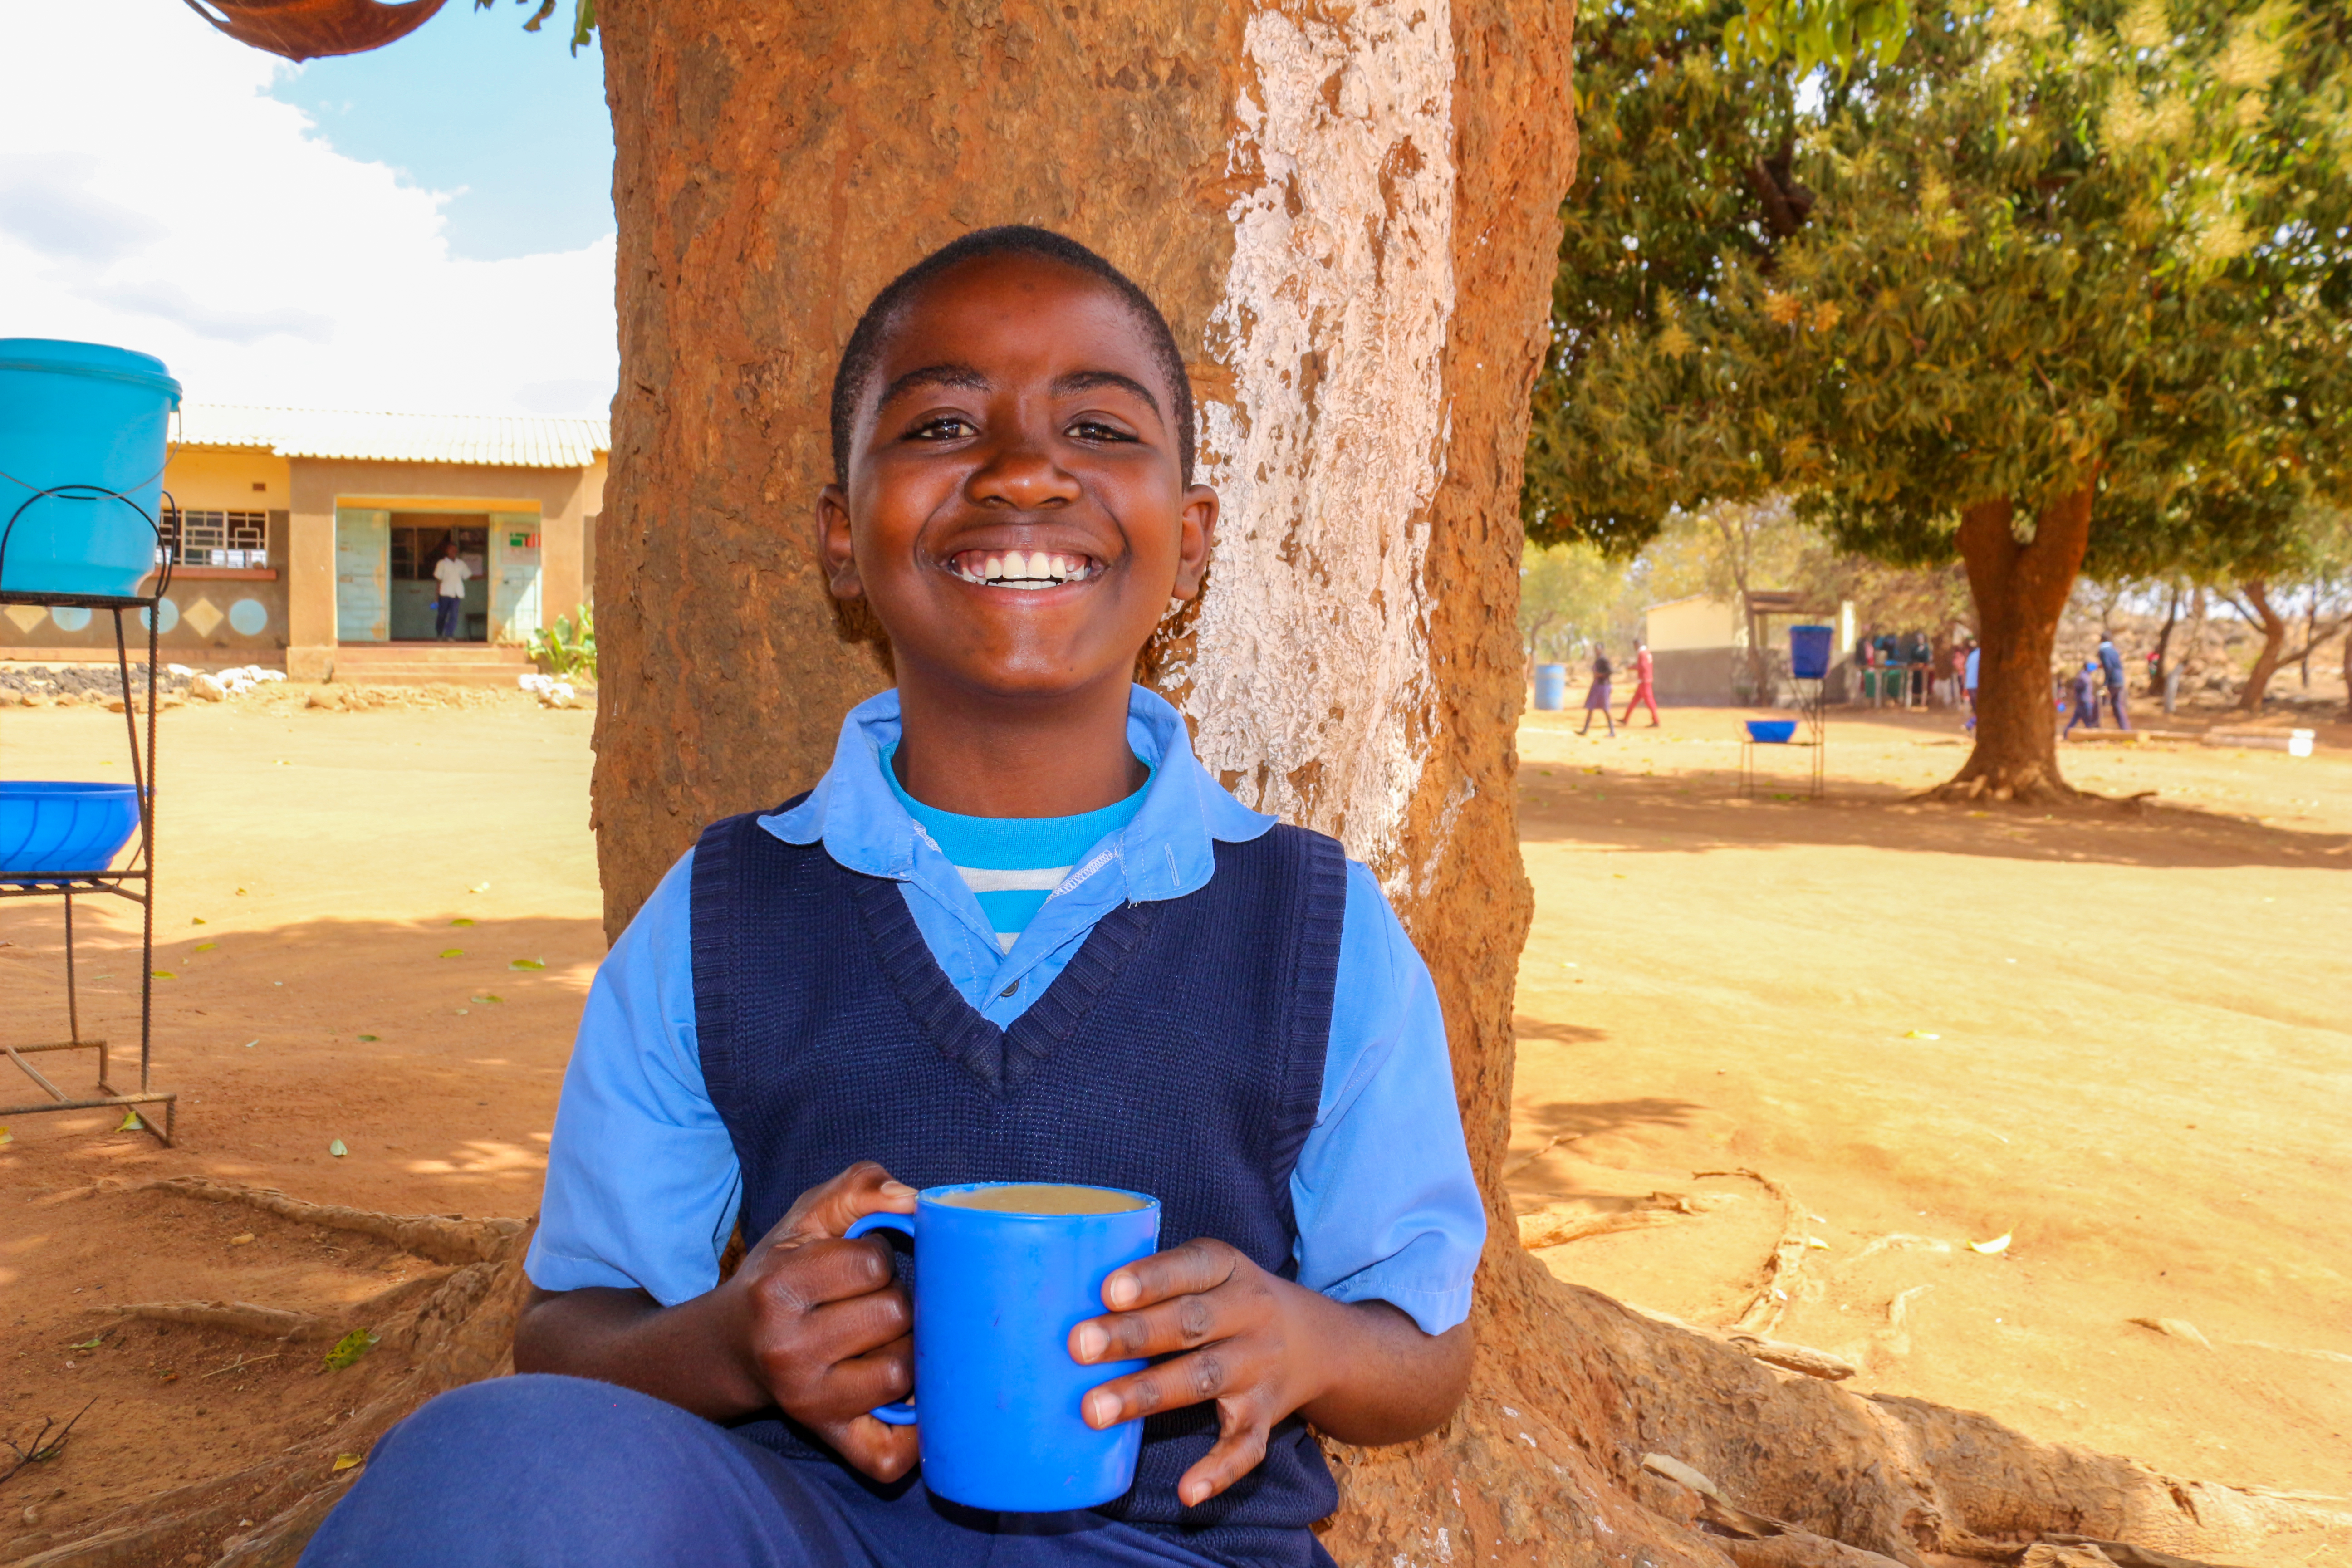 Alpha attends Kwenje Primary School in Zambia, where we recently began serving Mary's Meals.